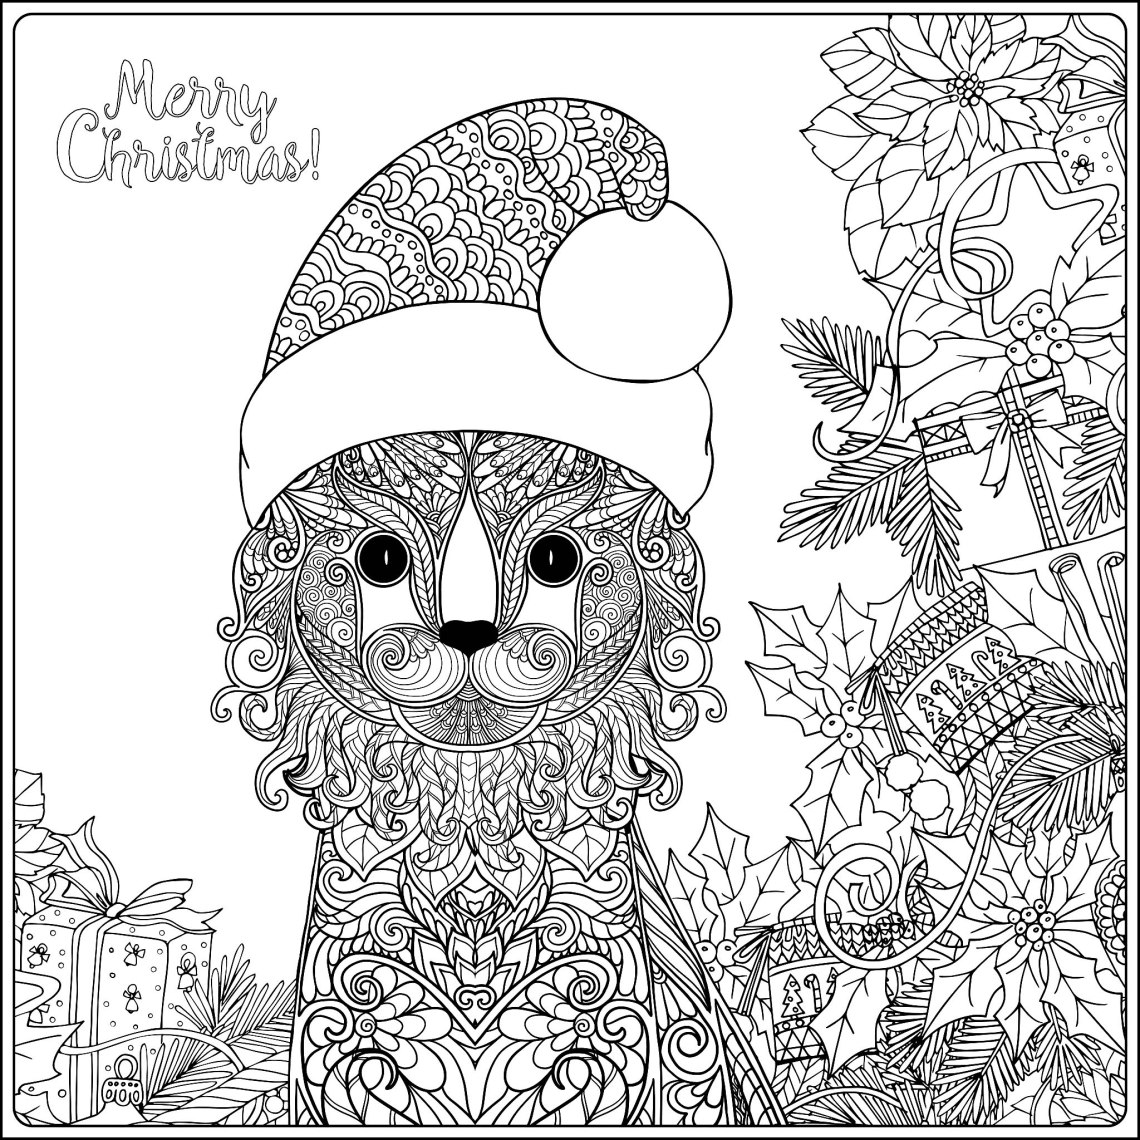 Christmas cat with gifts - Christmas Adult Coloring Pages   christmas coloring pages for adults